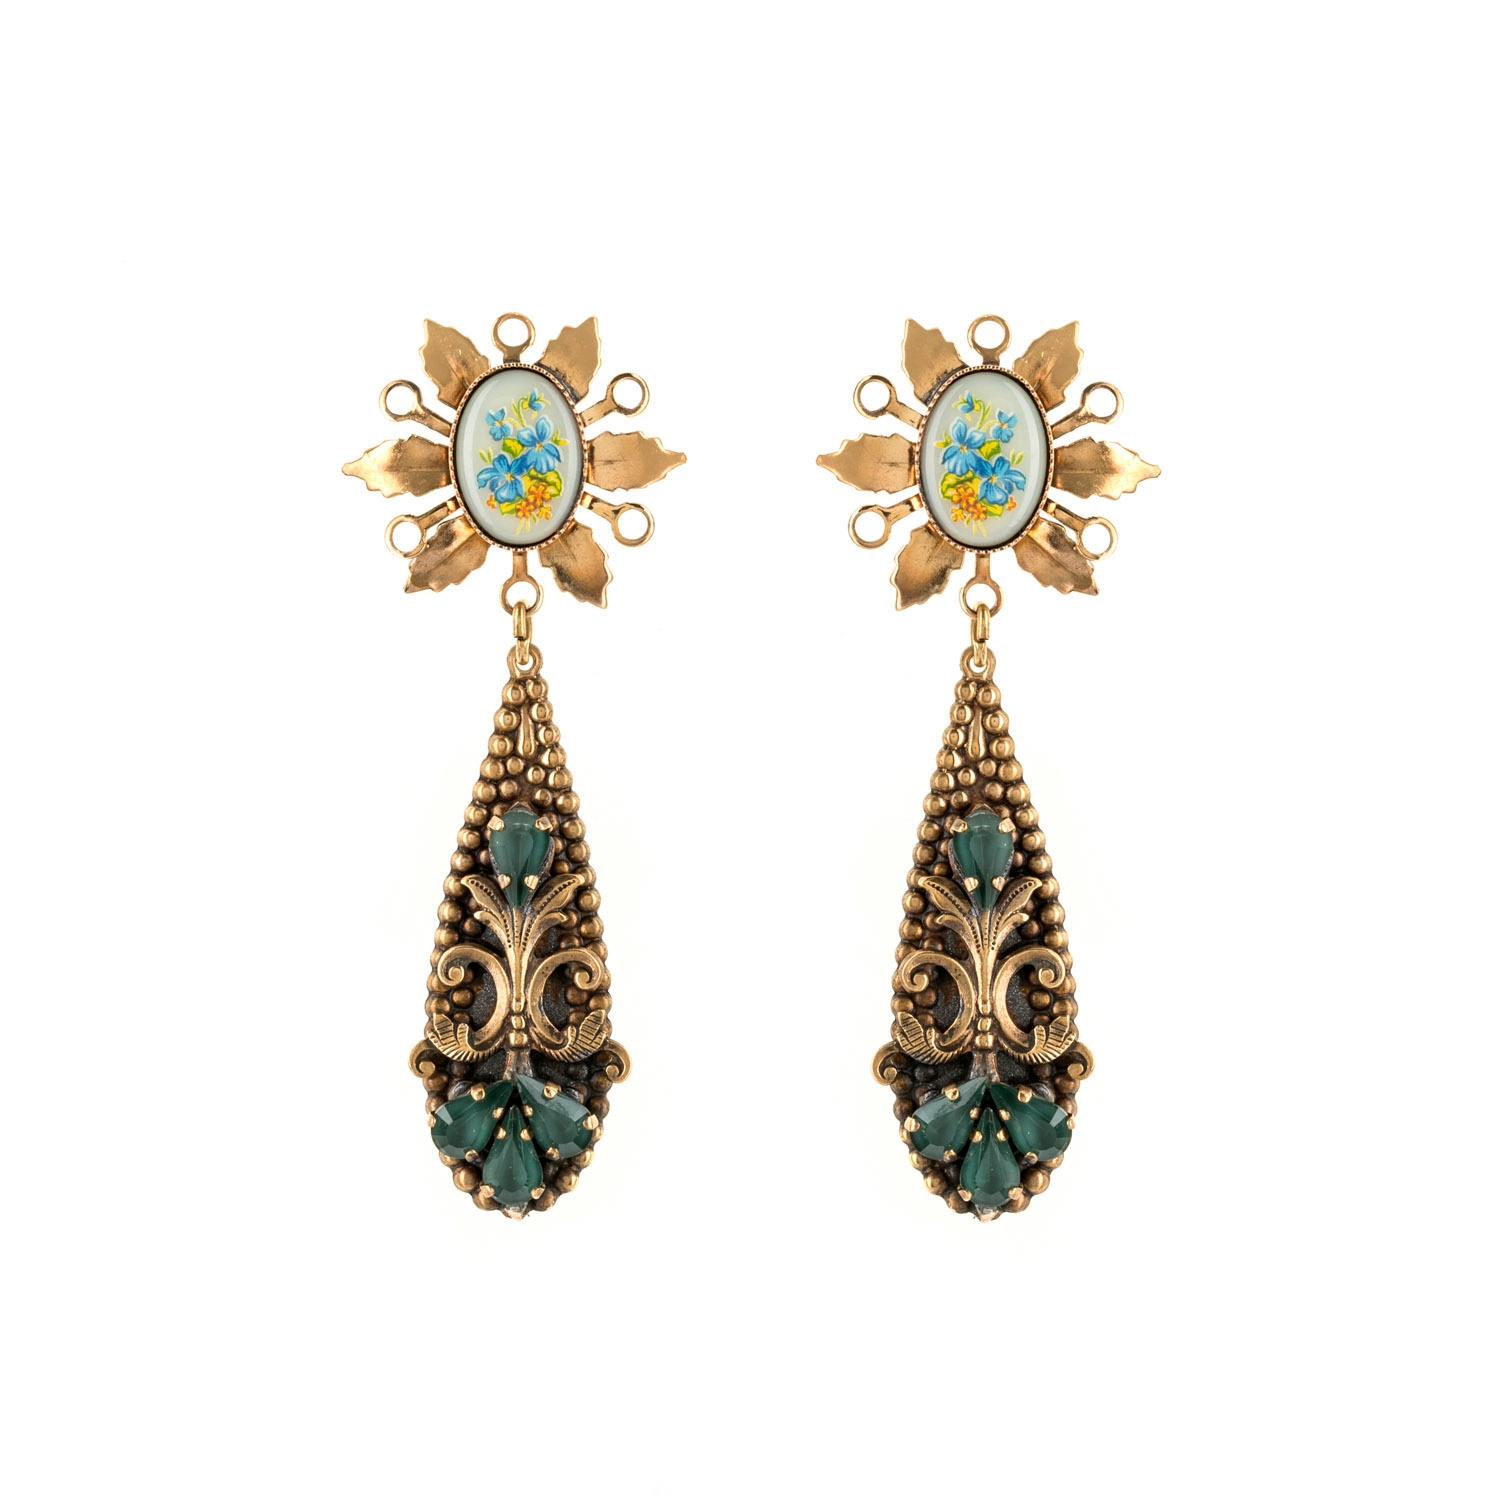 HALO & CO VINTAGE CABOUCHON STATEMENT EARRING